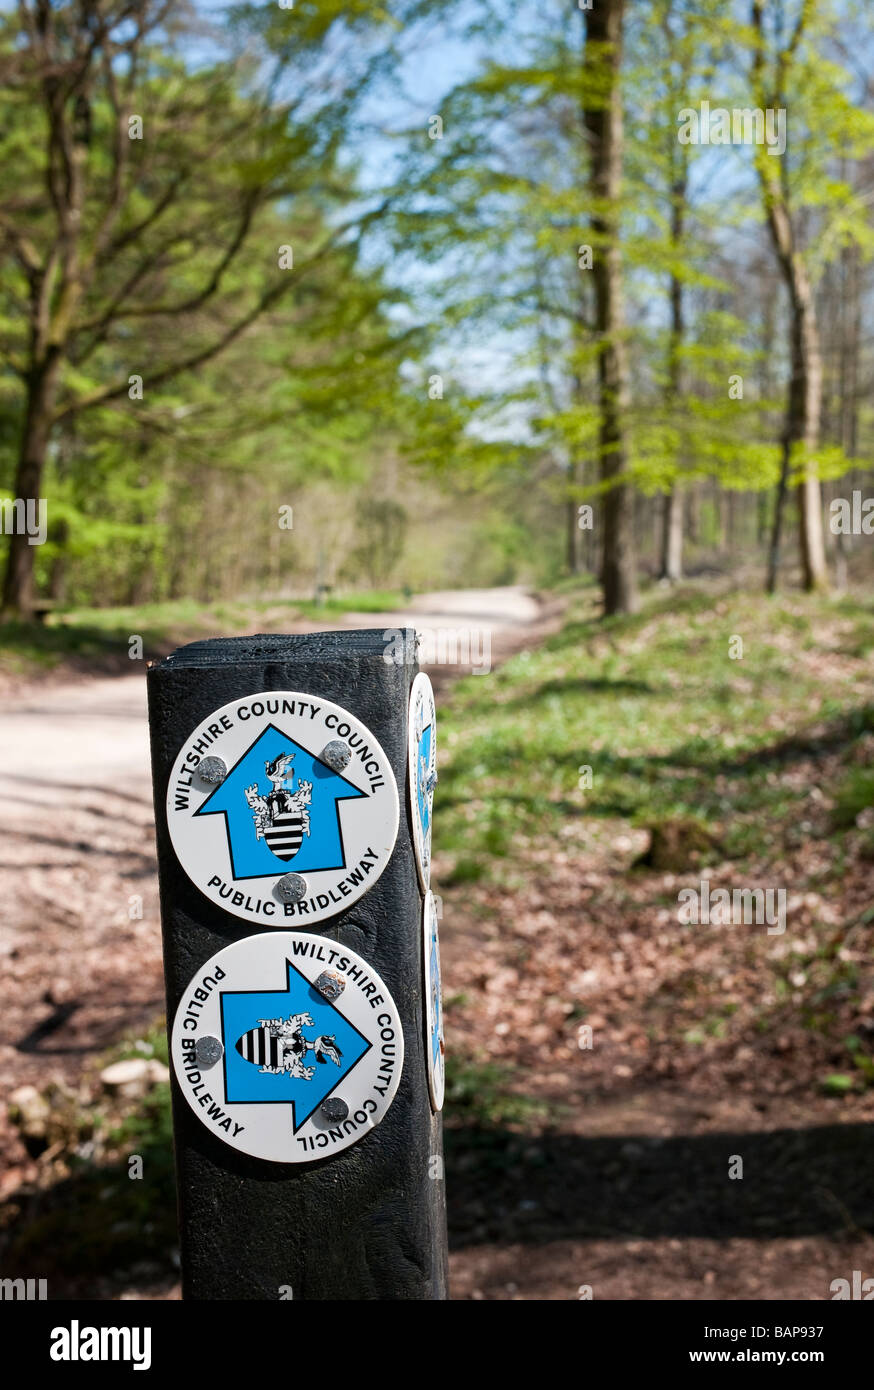 Signs showing directions for public bridleways in West Woods Wiltshire UK - Stock Image